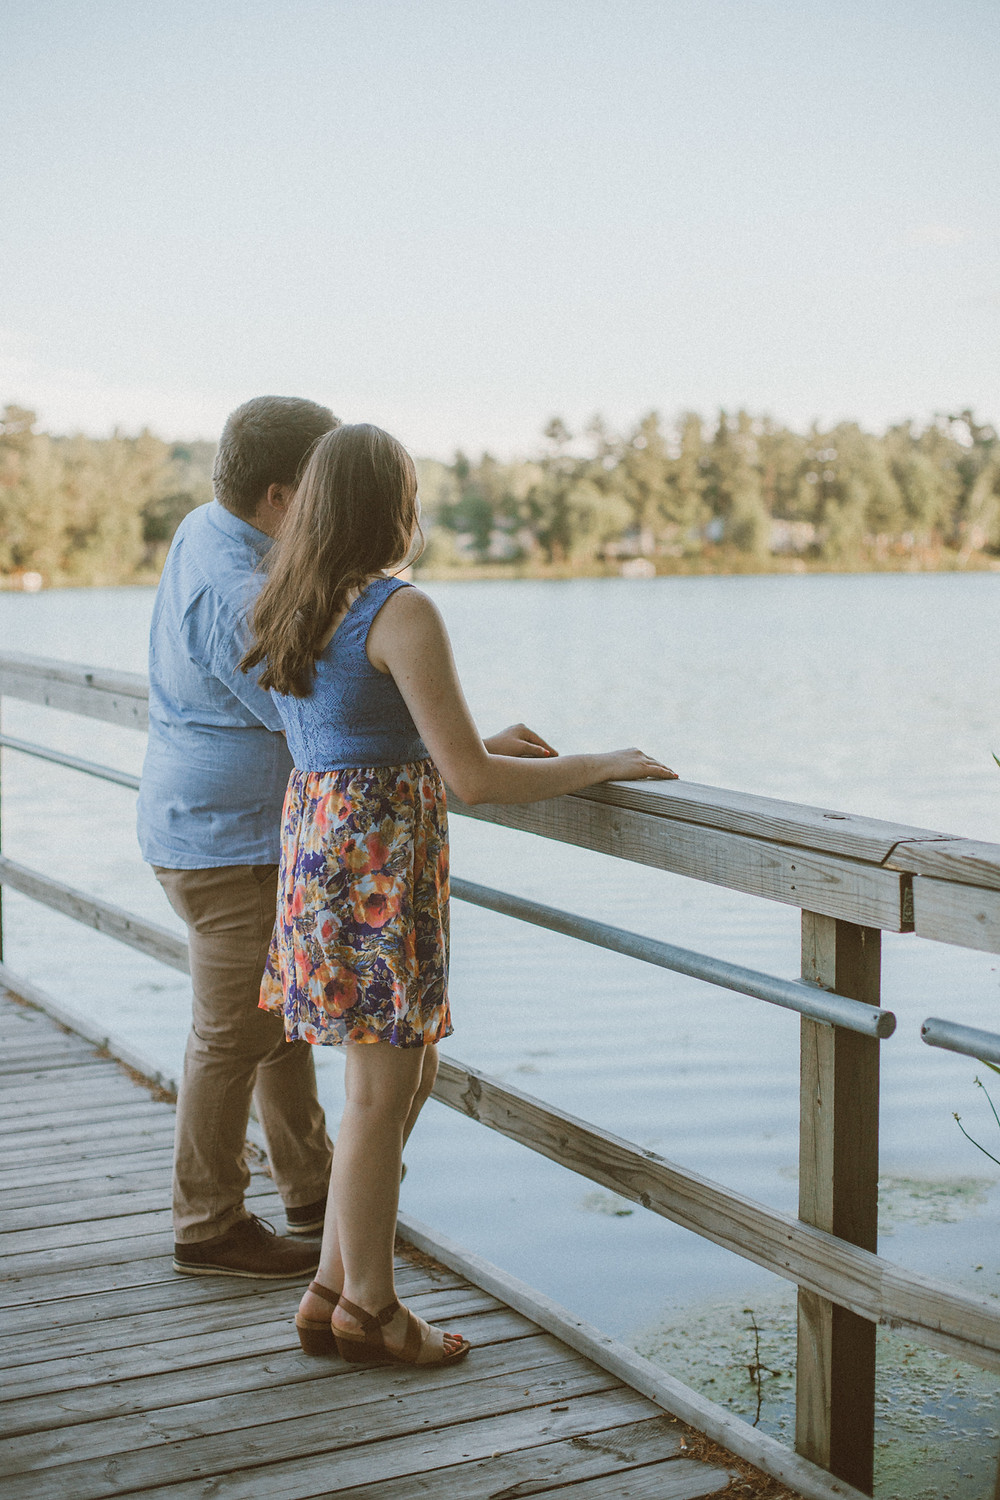 Lifestyle engagement session at South Park in Waupaca, WI.